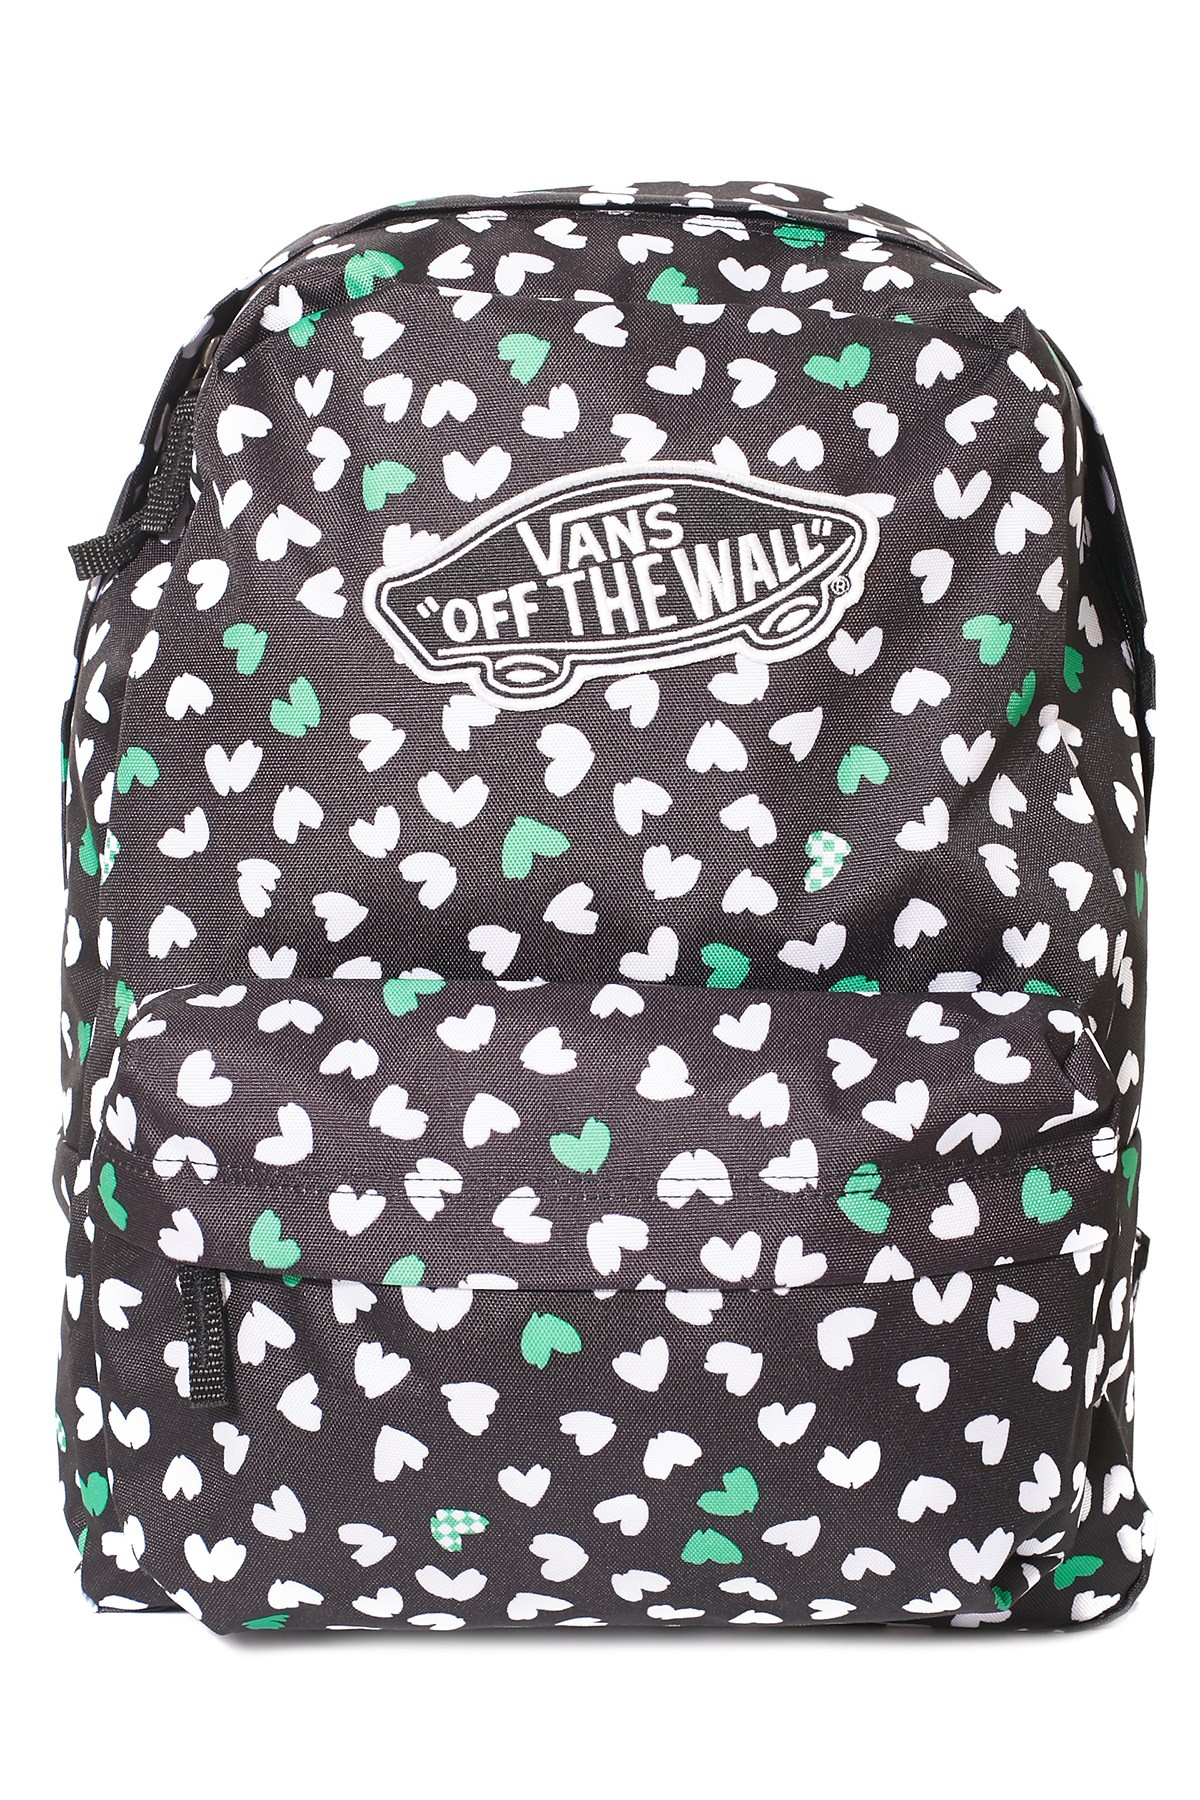 Vans Realm Backpack Black Kelly Green FREE POST Skate Surf School Bag